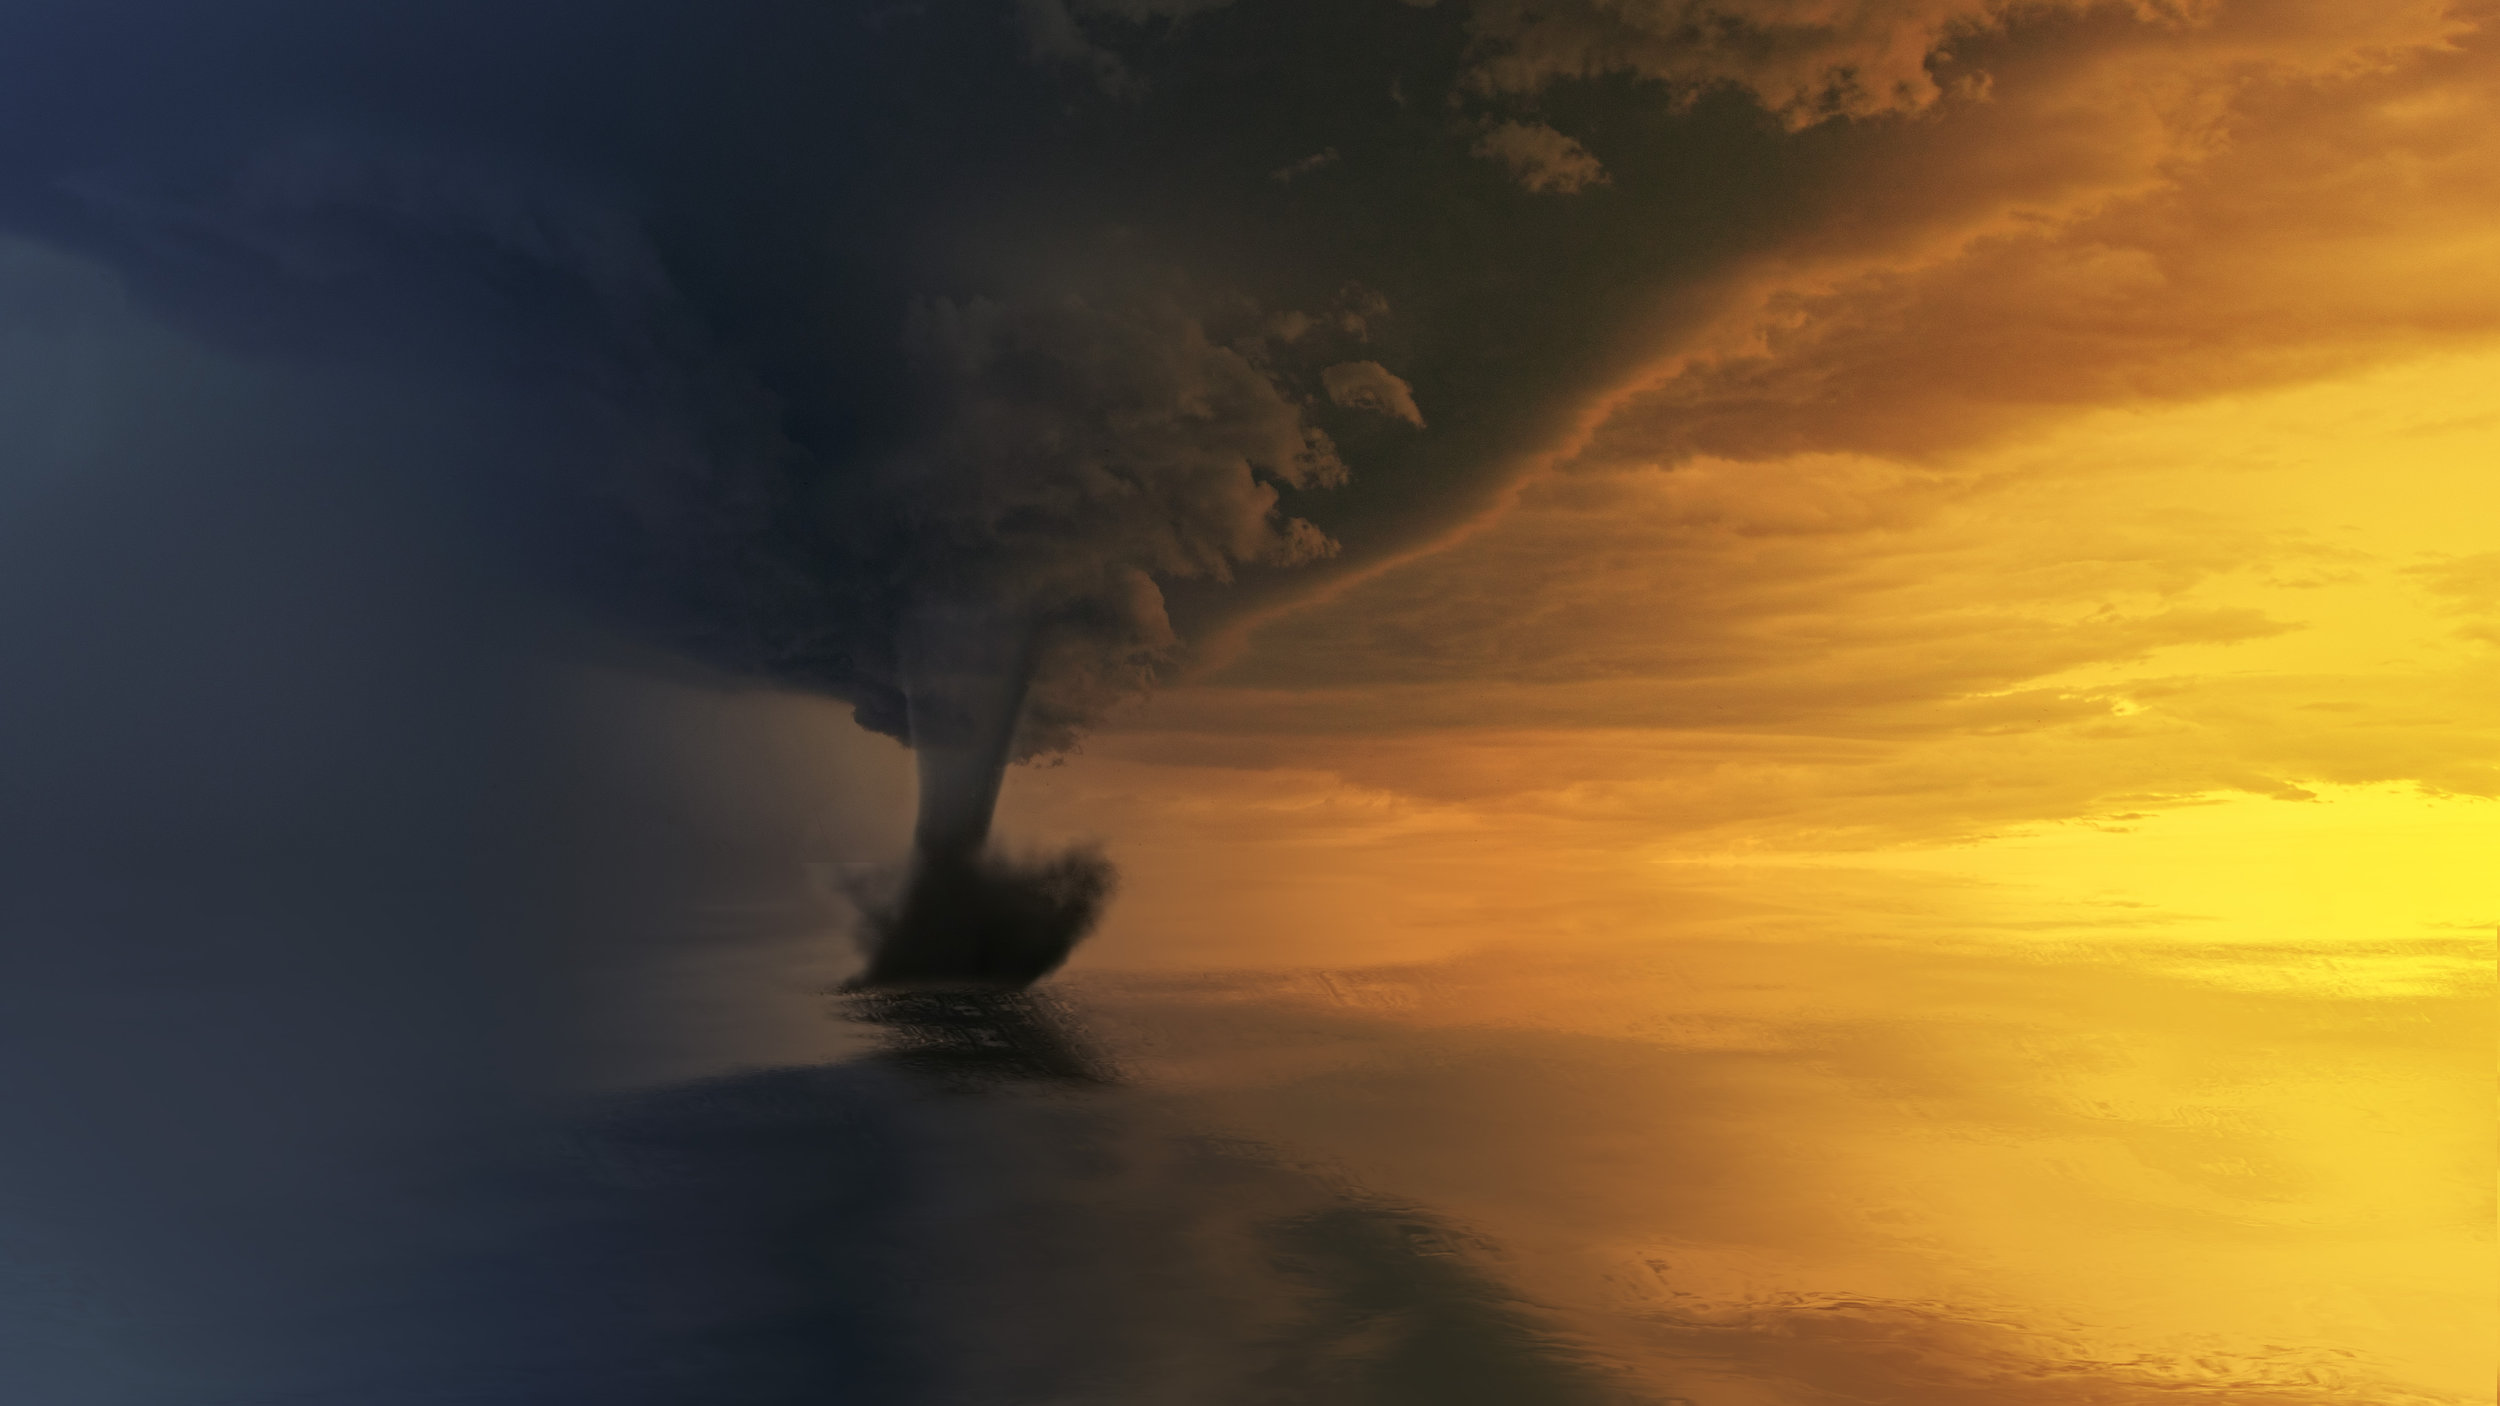 Canva - Tornado on Body of Water during Golden Hour.jpg